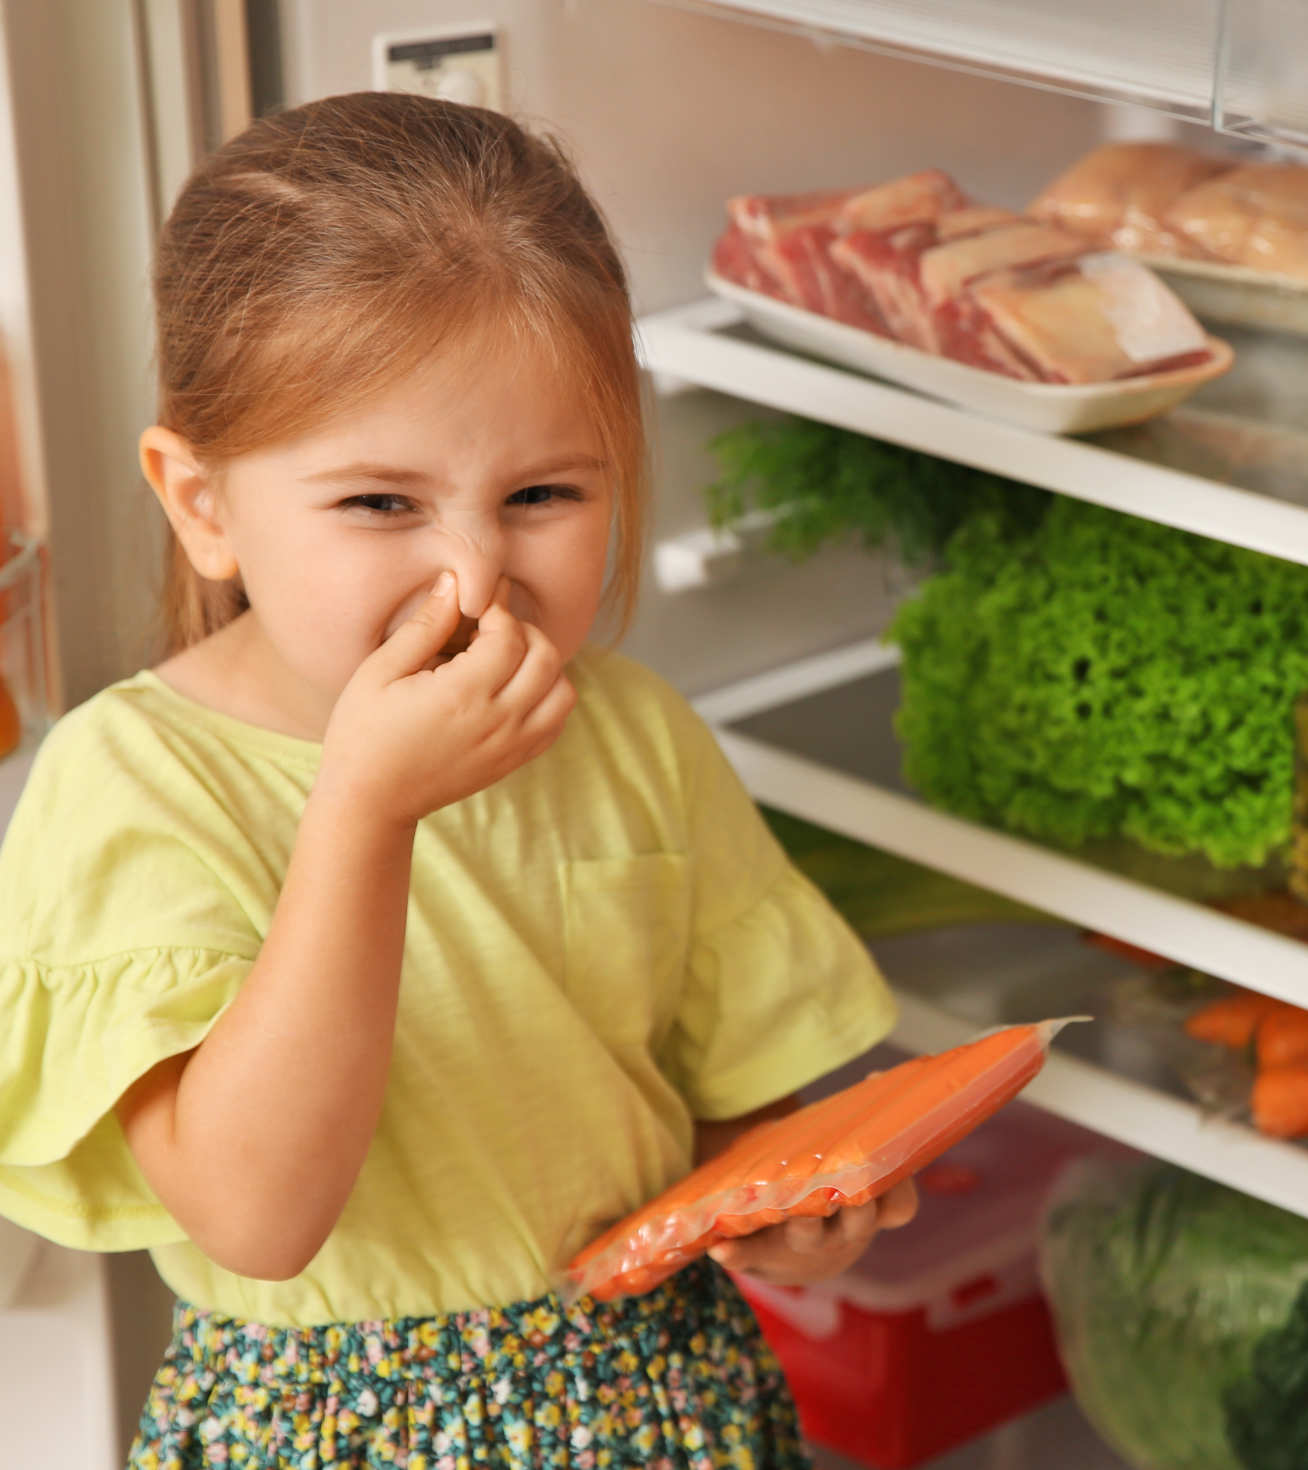 Photo of little girl next to open fridge holding a packet of sausages and pinching her nose